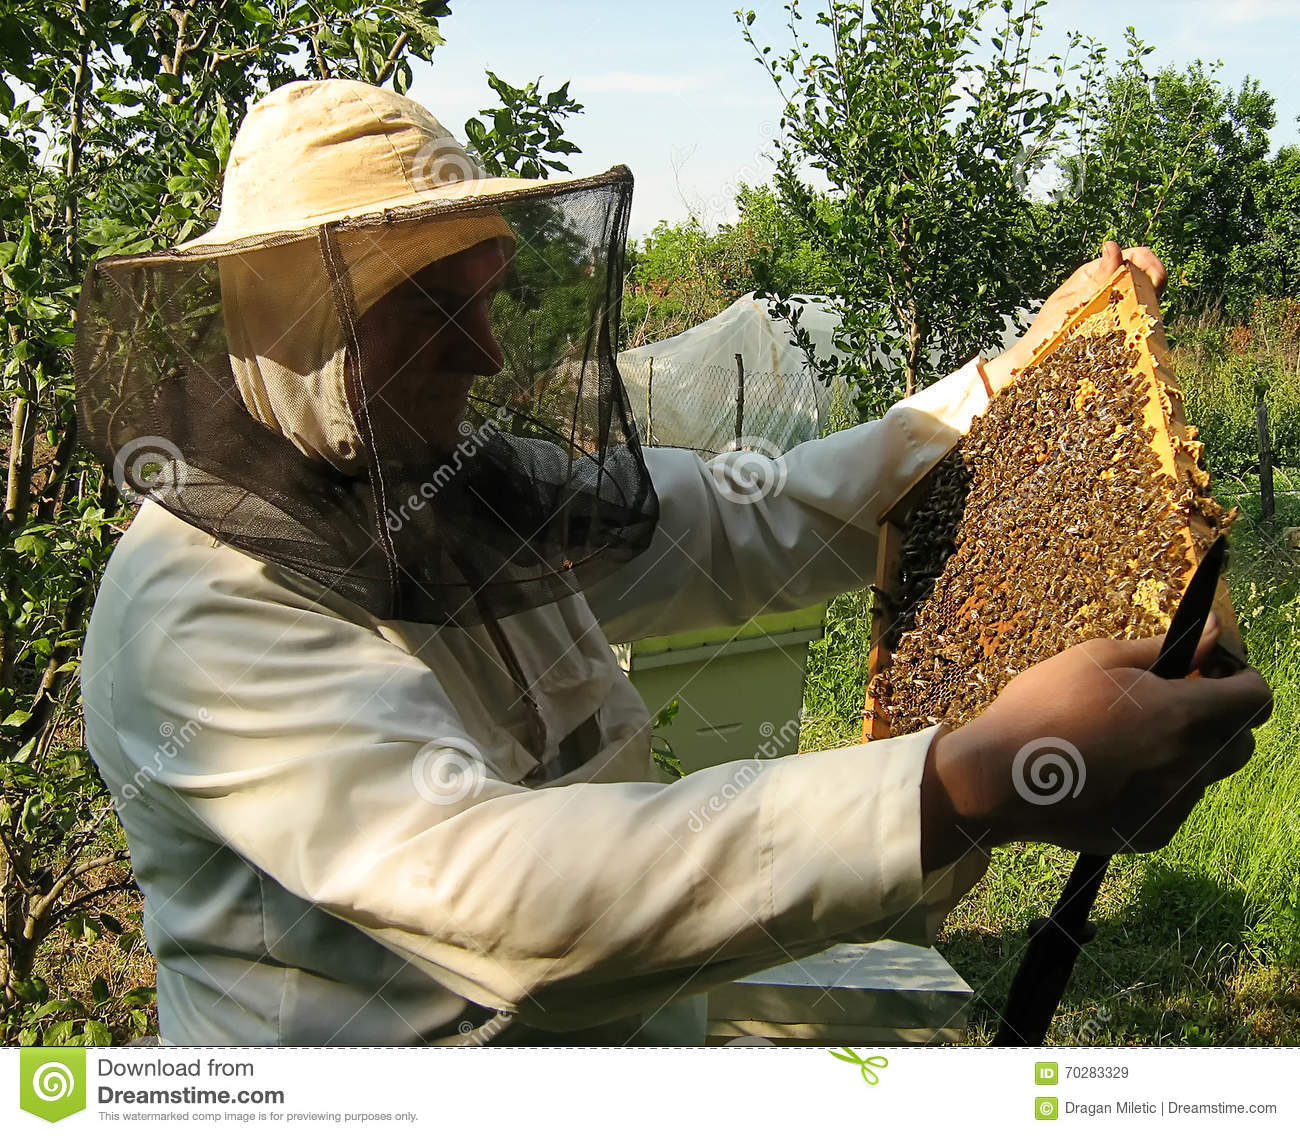 The beekeeper and framework with bees